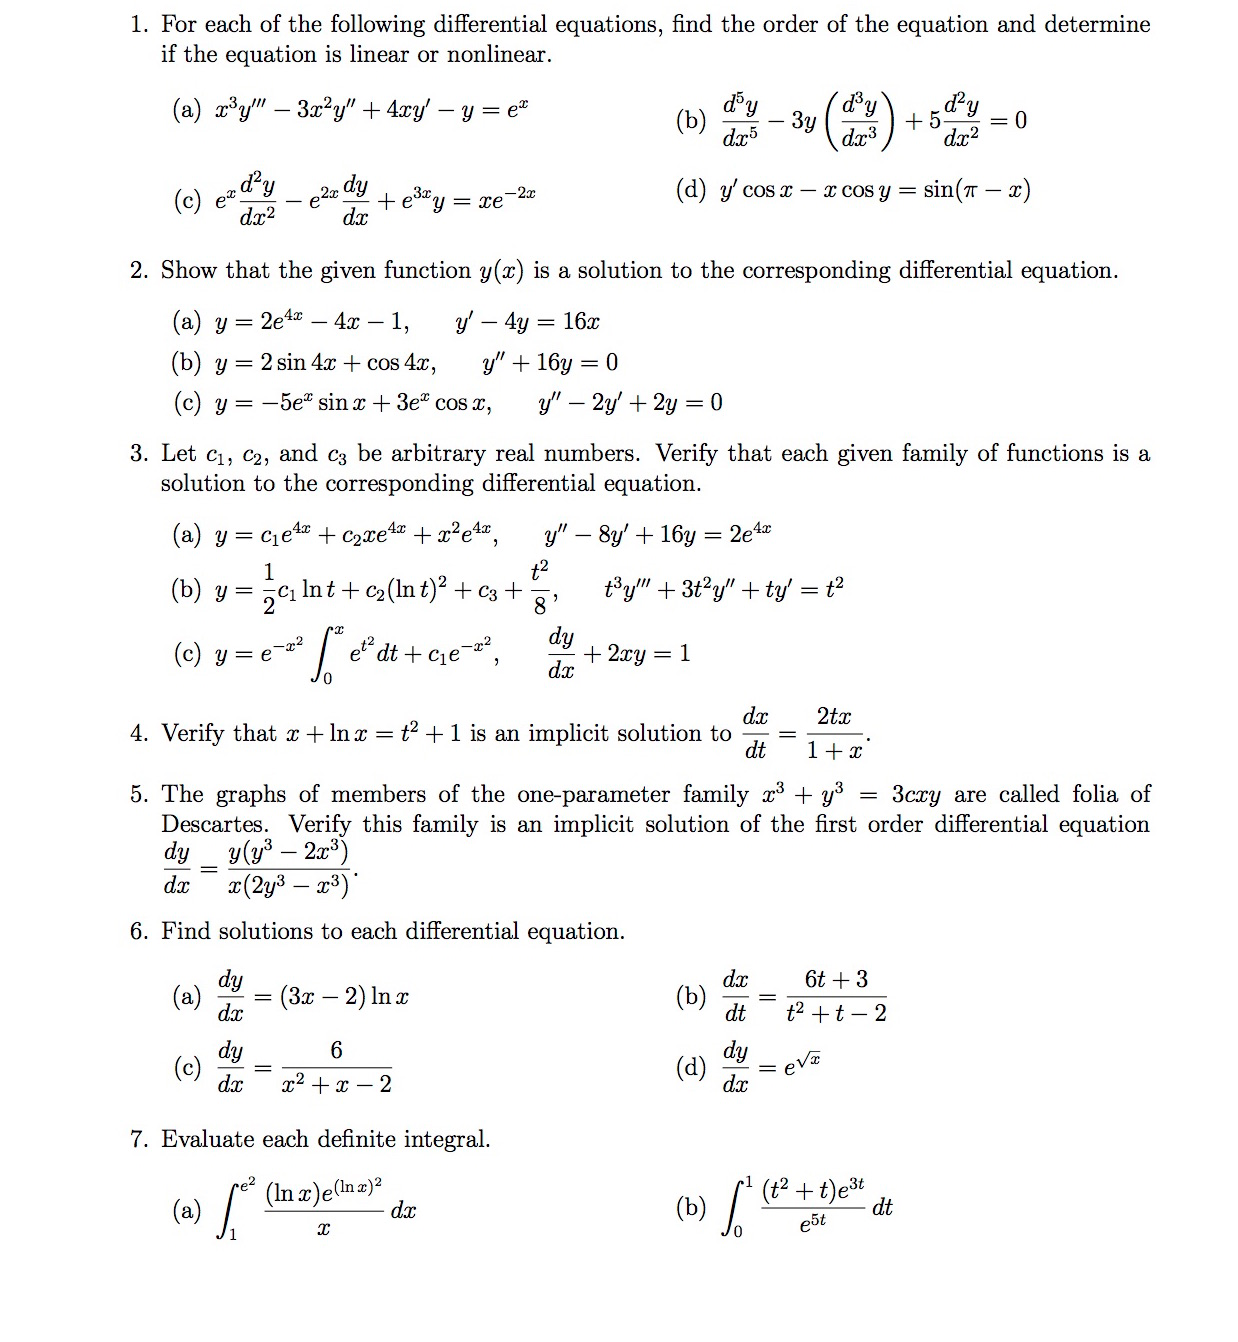 solved: for each of the following differential equations